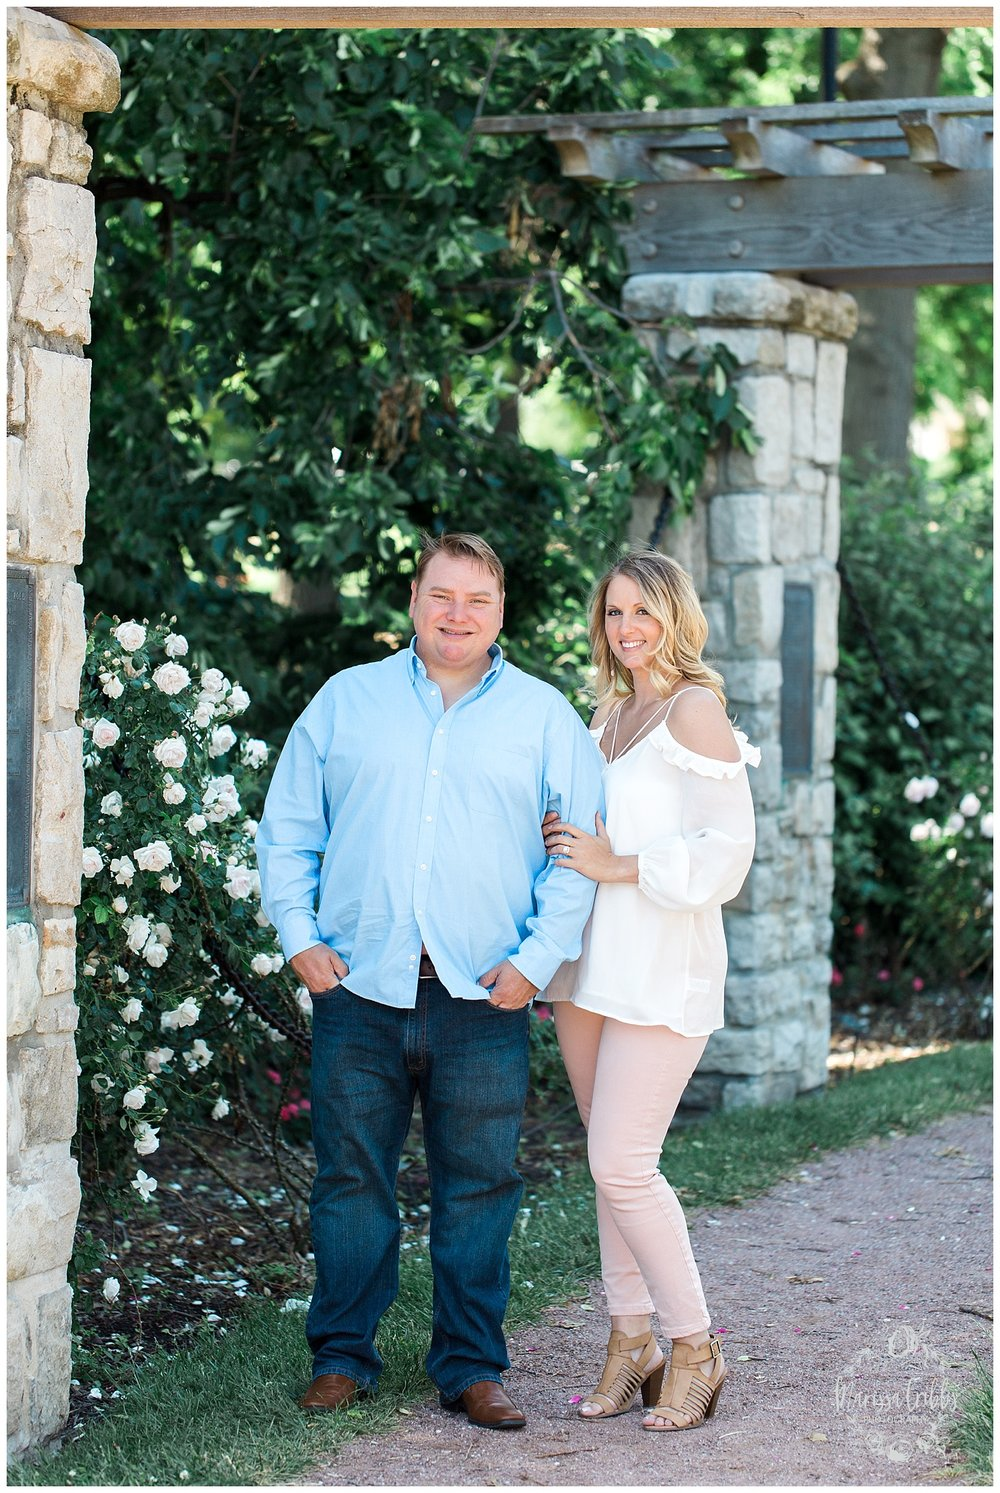 Kristen and Scott | Kansas City Plaza and Loose Park Engagement Photography | Marissa Cribbs Photography_1147.jpg